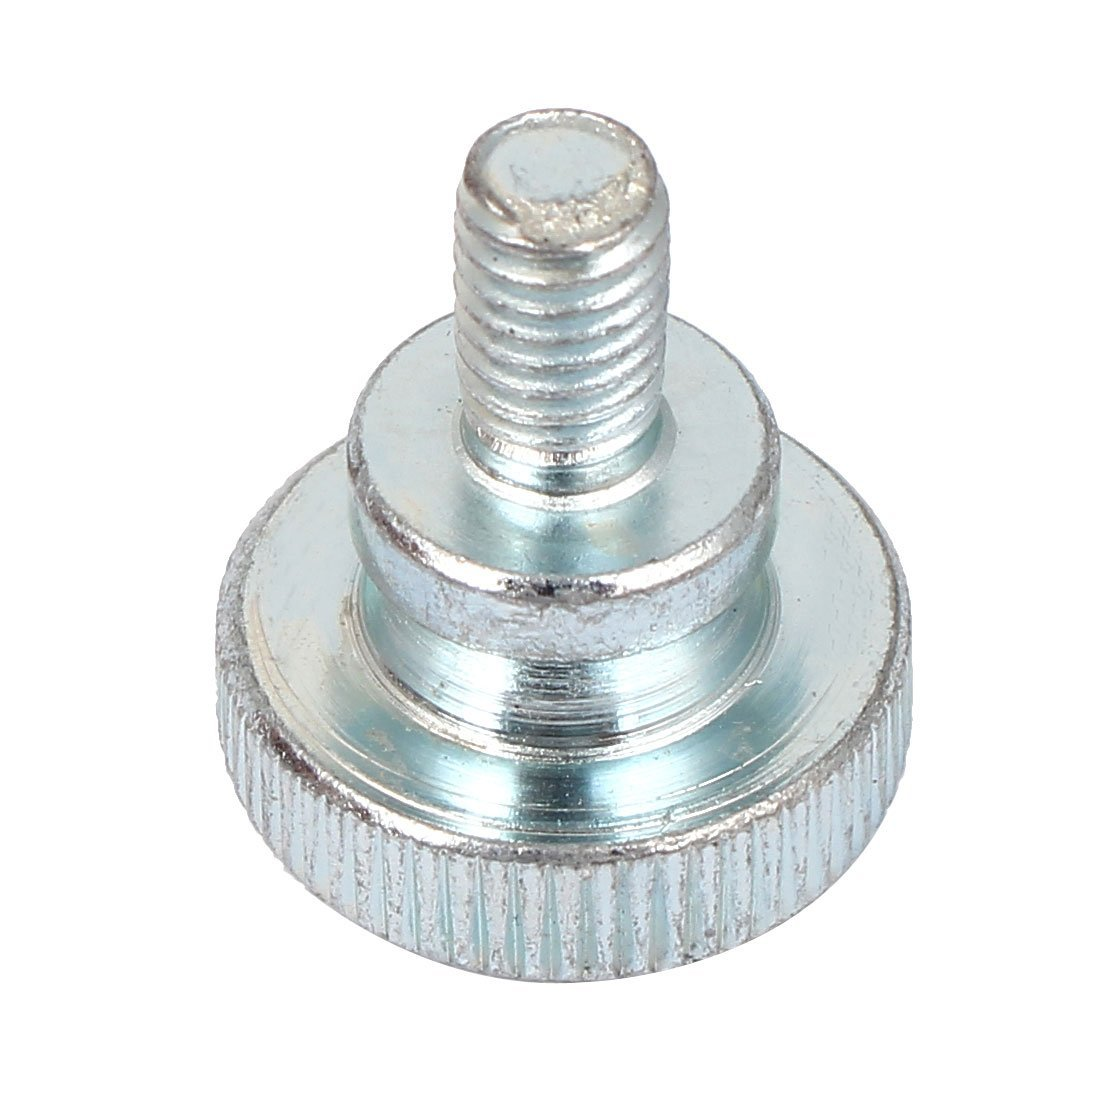 #6-32 Screw Size Hex Standoff 5.75 Length, Pack of 1 Female Stainless Steel 0.25 OD